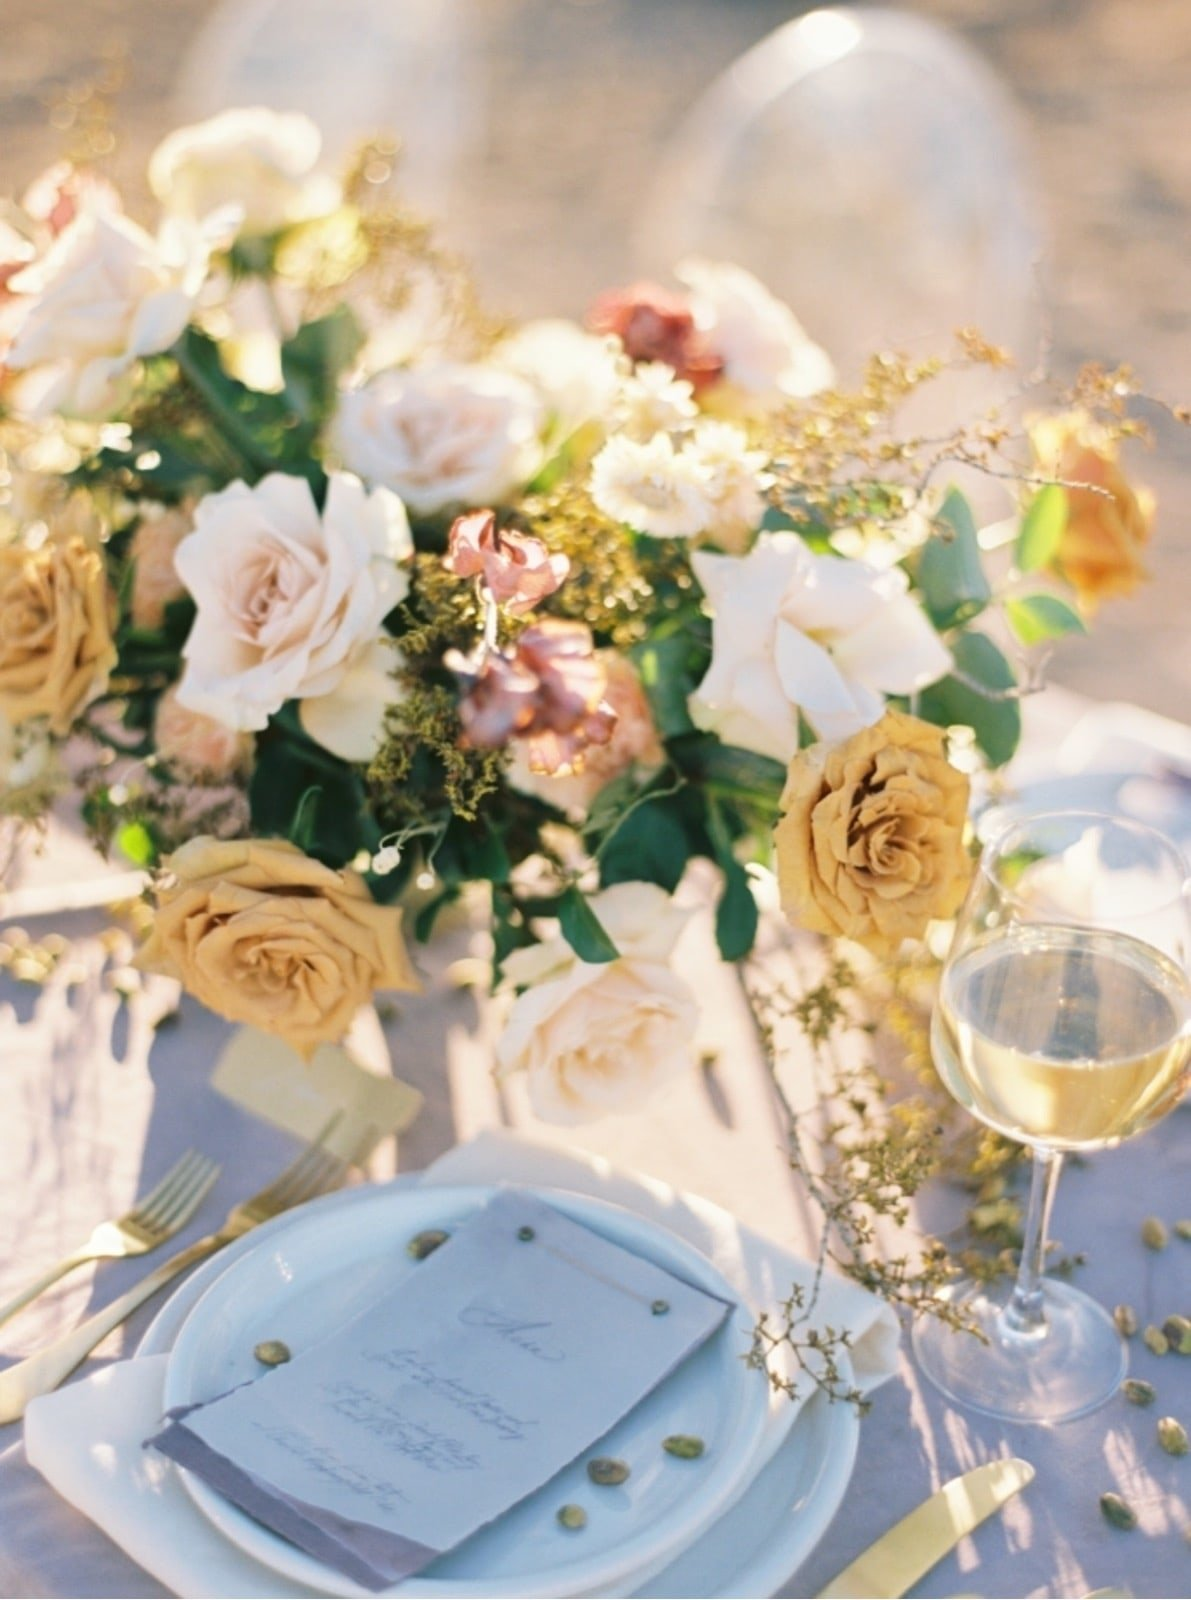 janna brown nashville florist and wedding designer-6